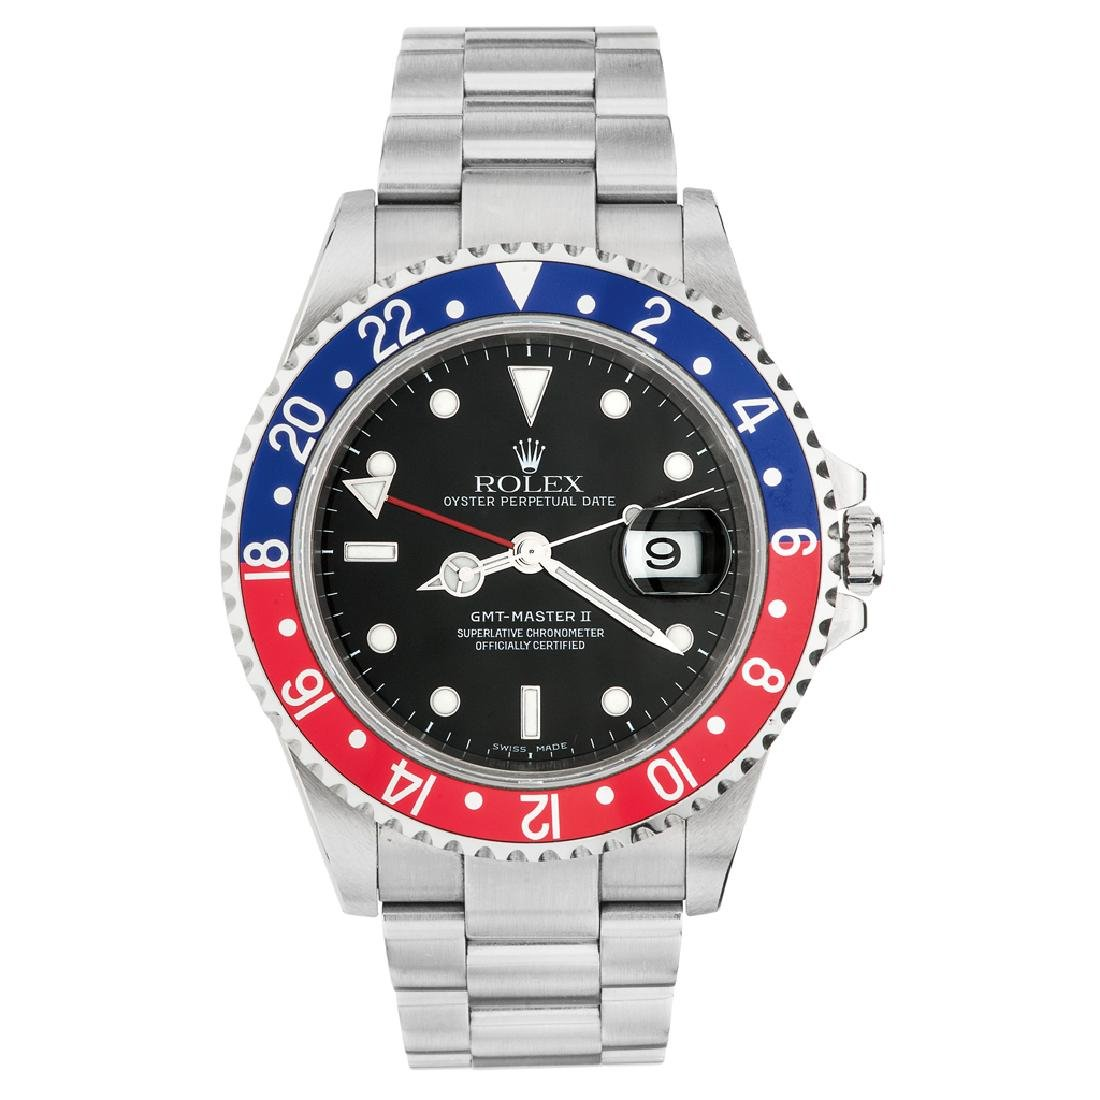 ROLEX OYSTER PERPETUAL DATE GMT MASTER II WRISTWATCH